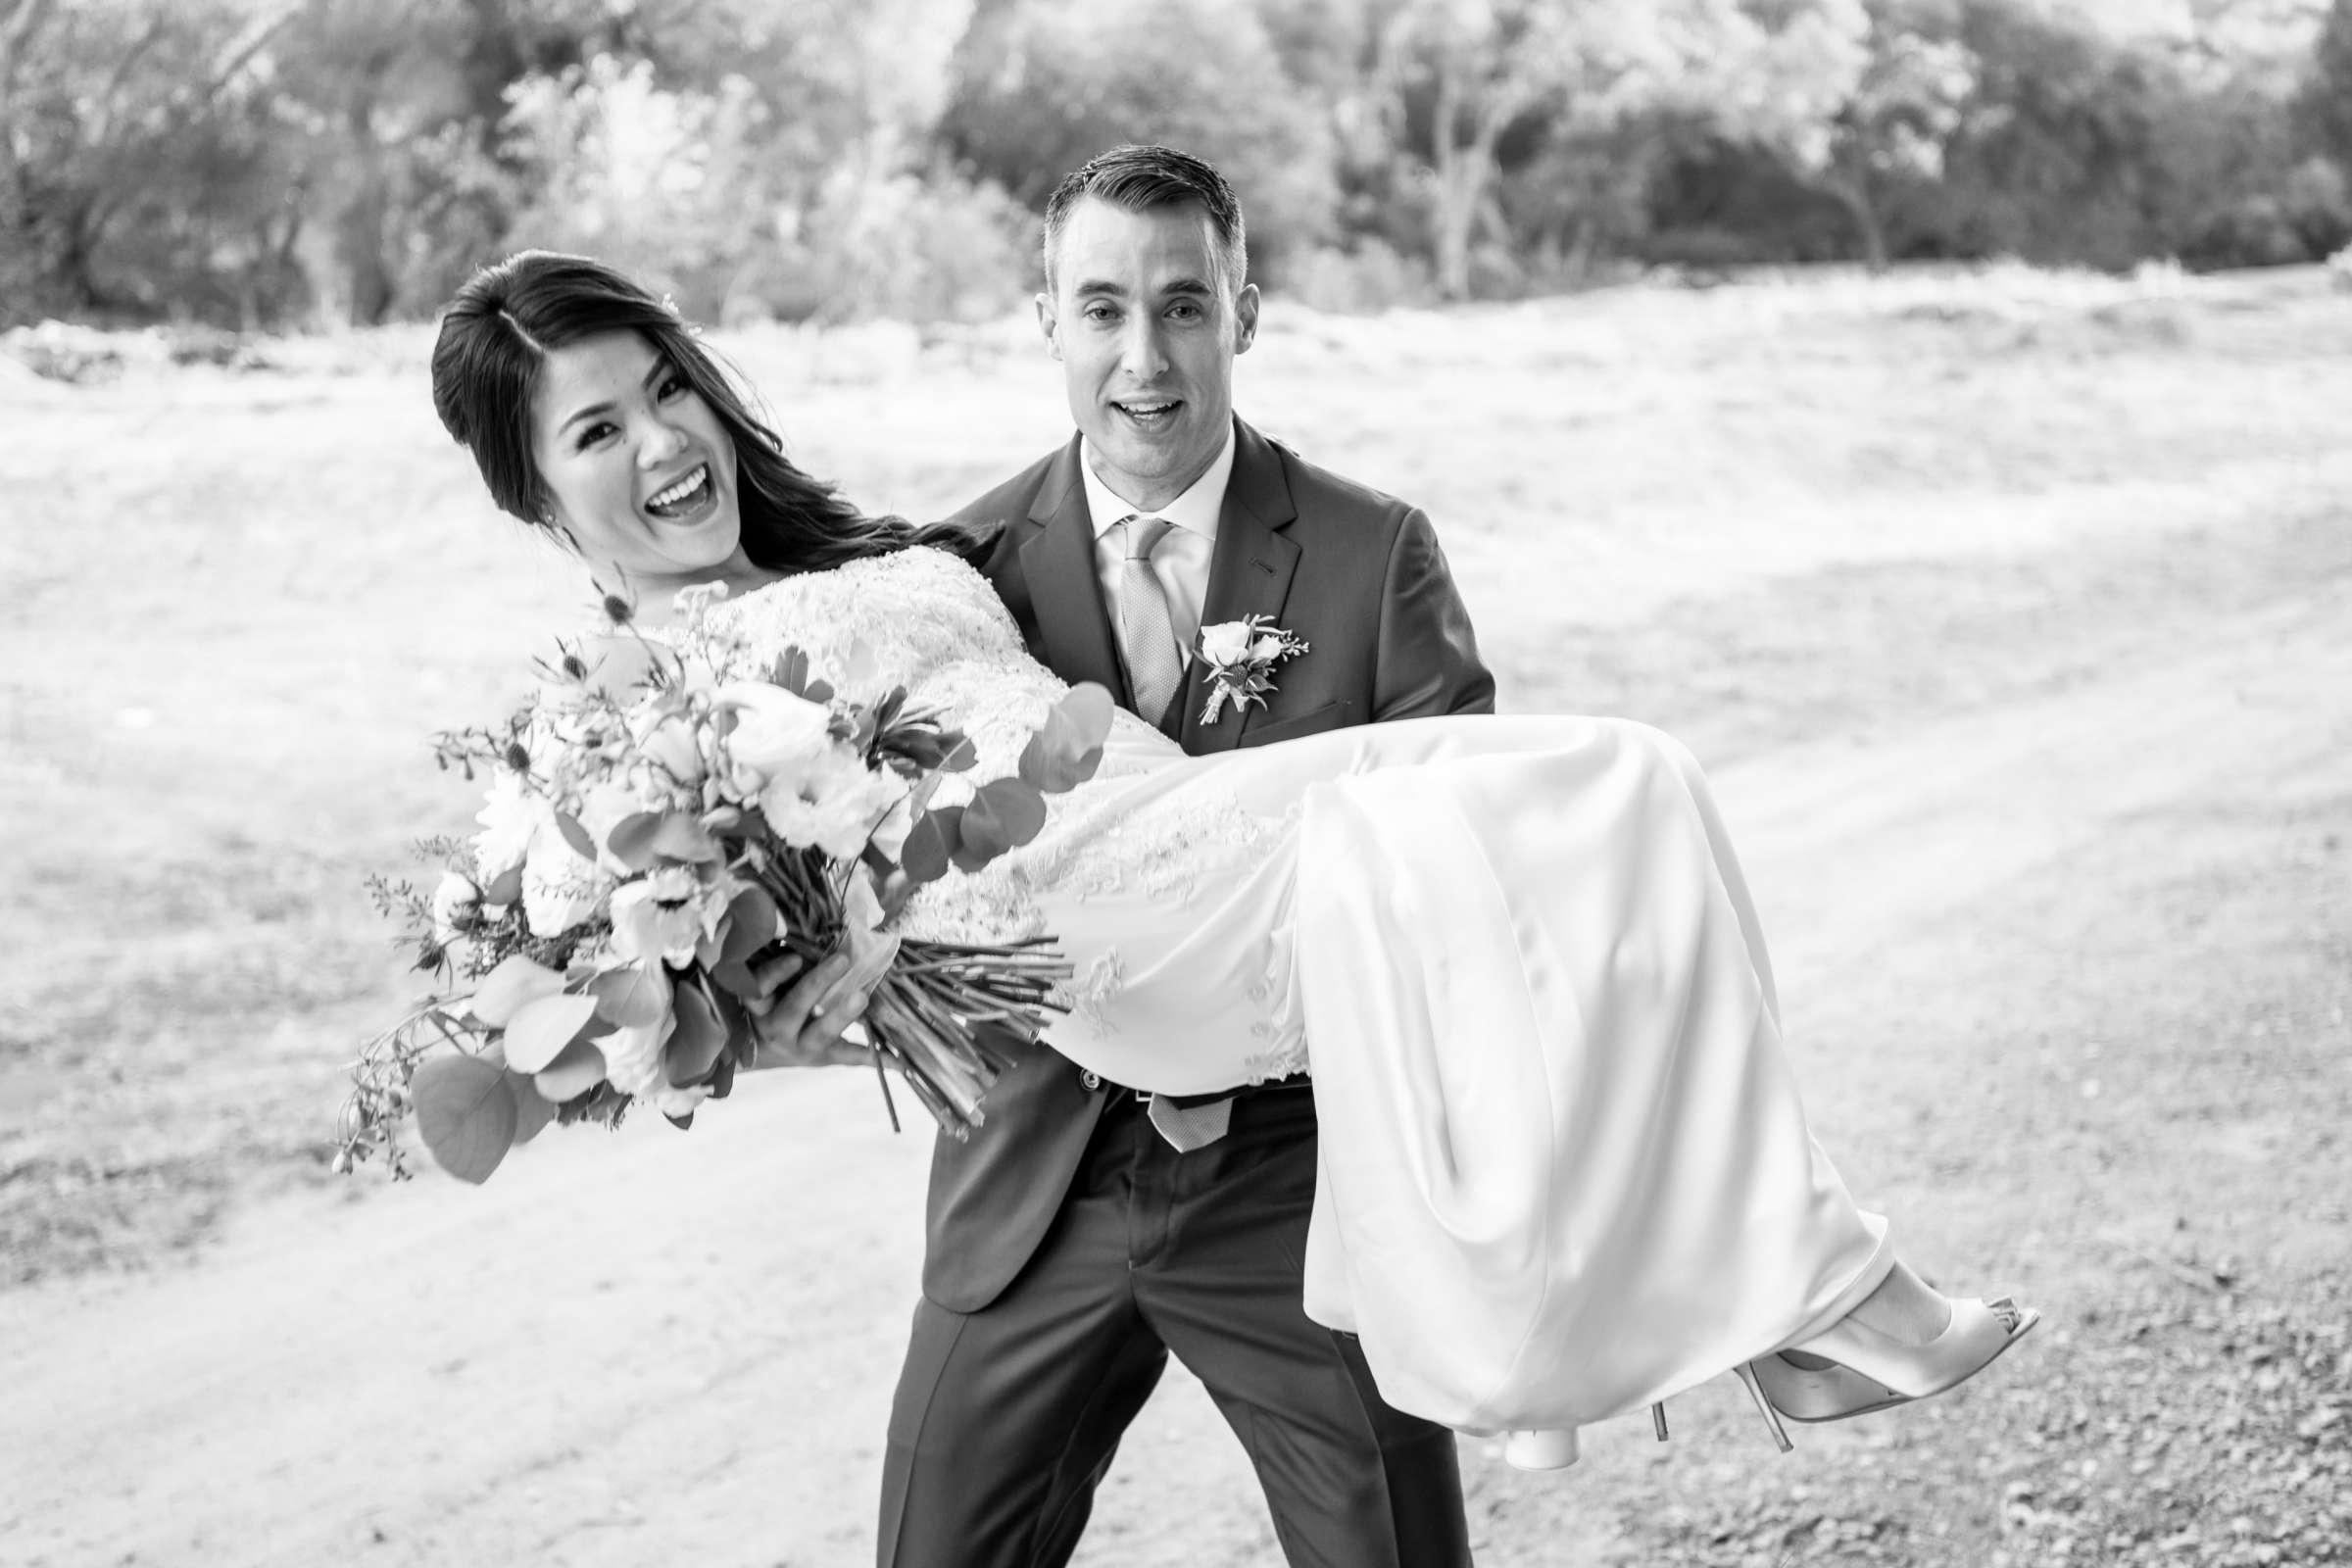 Mt Woodson Castle Wedding coordinated by I Do Weddings, Aya and Jared Wedding Photo #486997 by True Photography